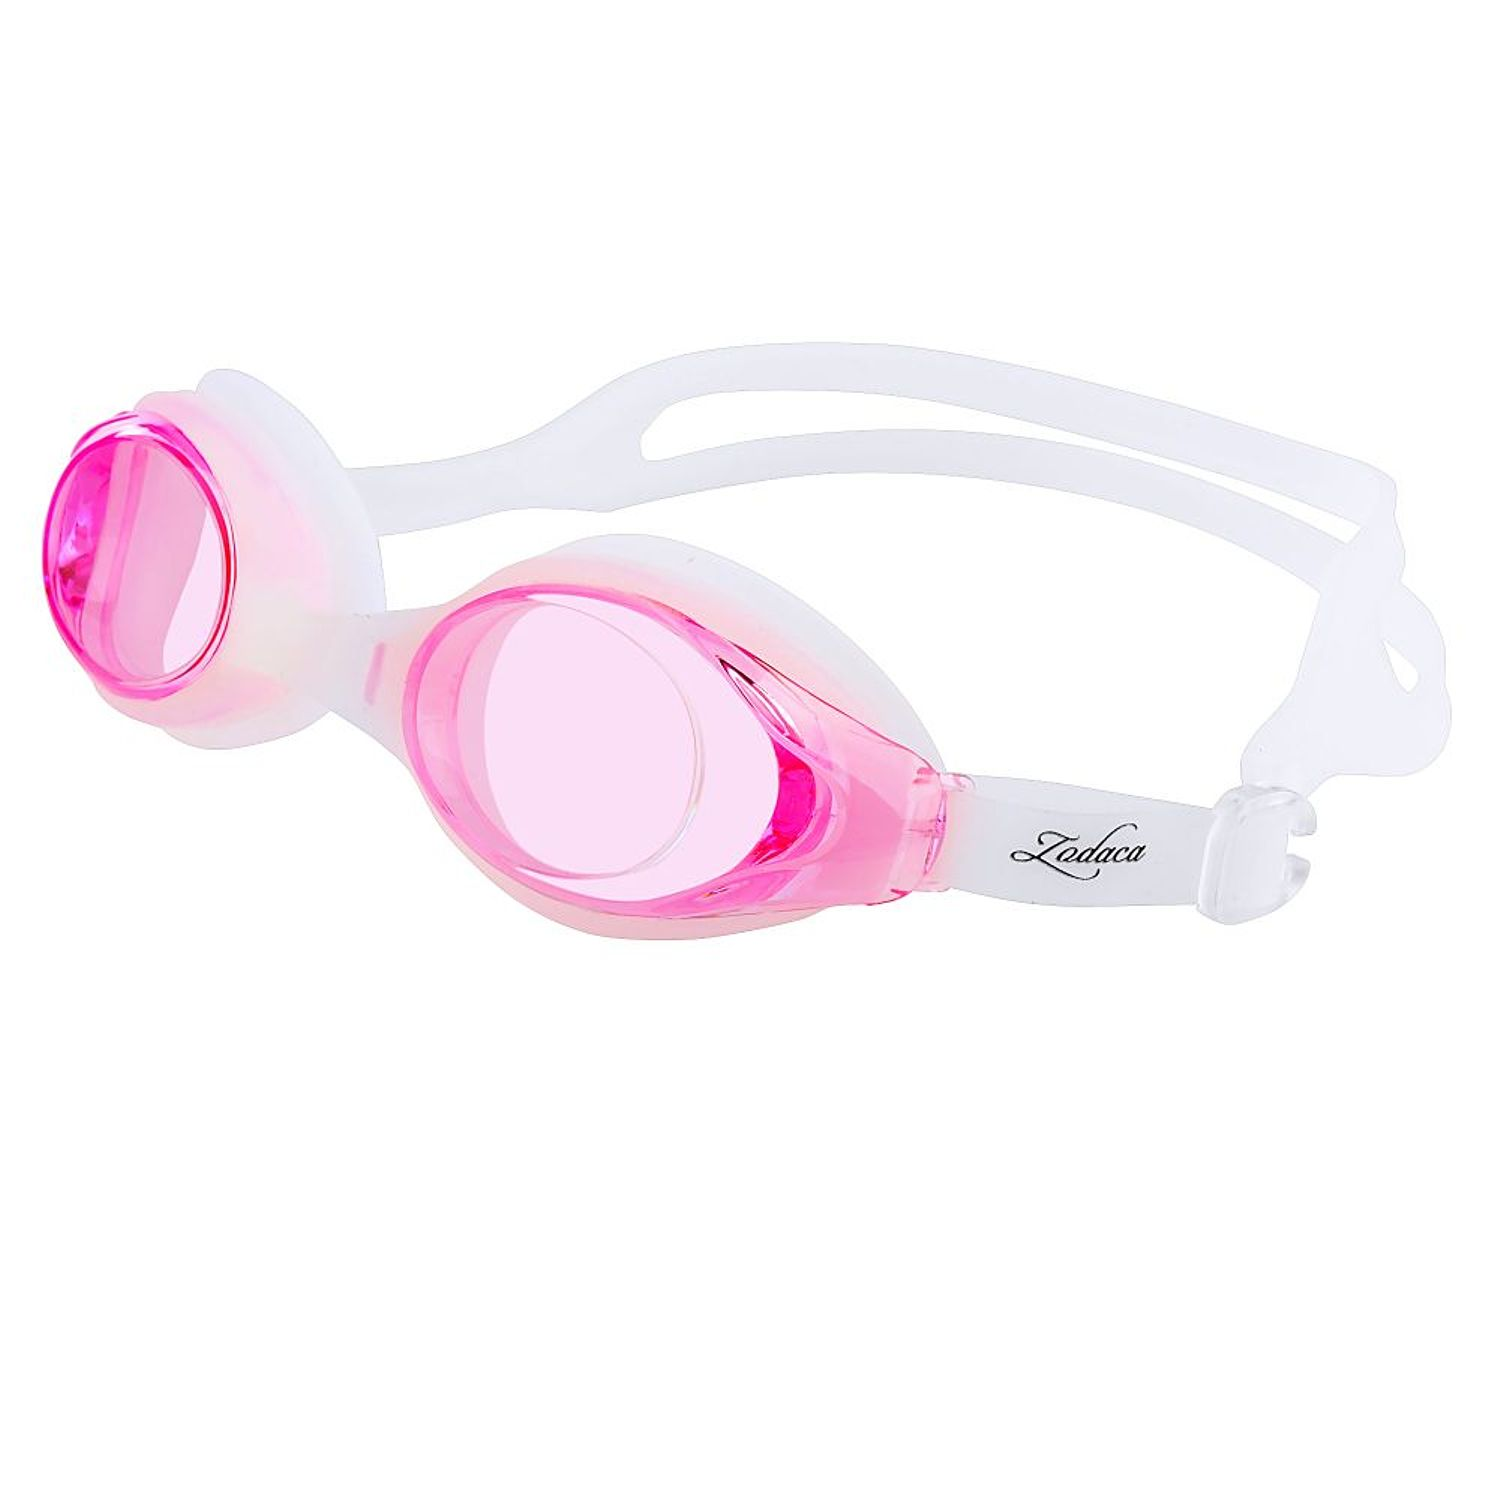 Zodaca Kids Child Adjustable Non-Fogging Anti UV Swim Swimming Goggles Glasses Pink (with Storage Case & Ear plugs ) by Insten